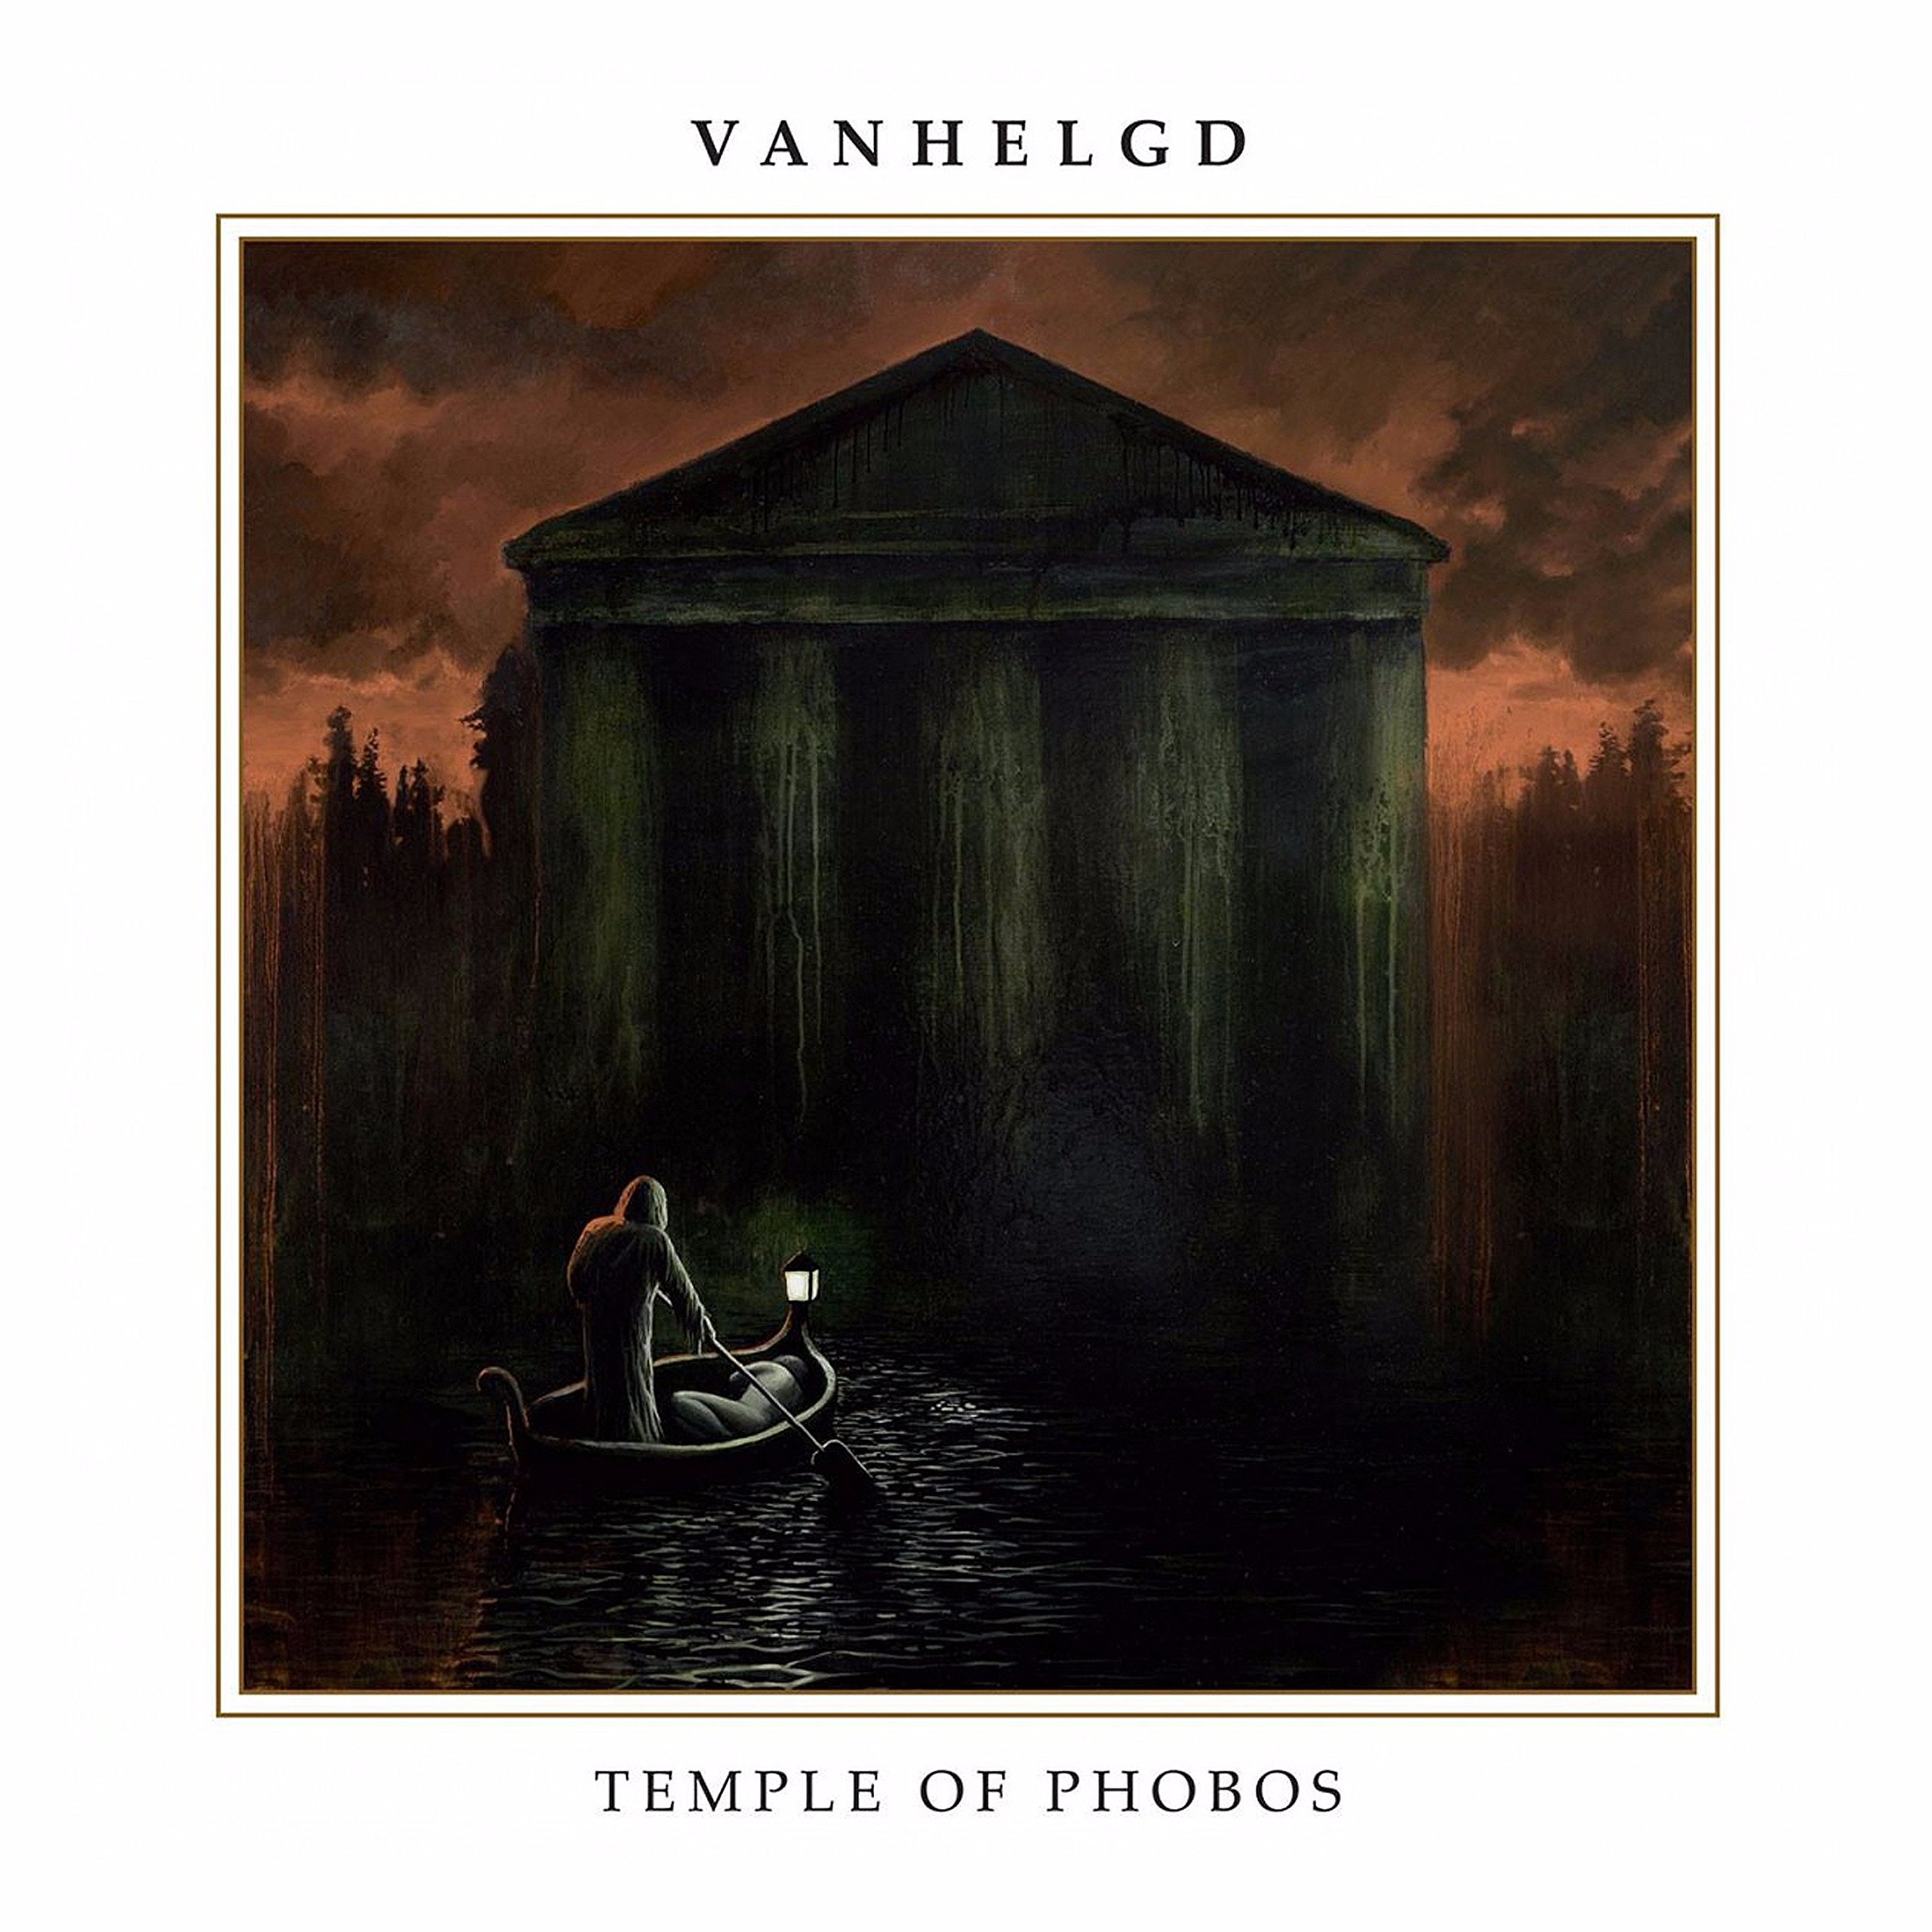 VANHELGD - TEMPLE OF PHOBOS (CD)